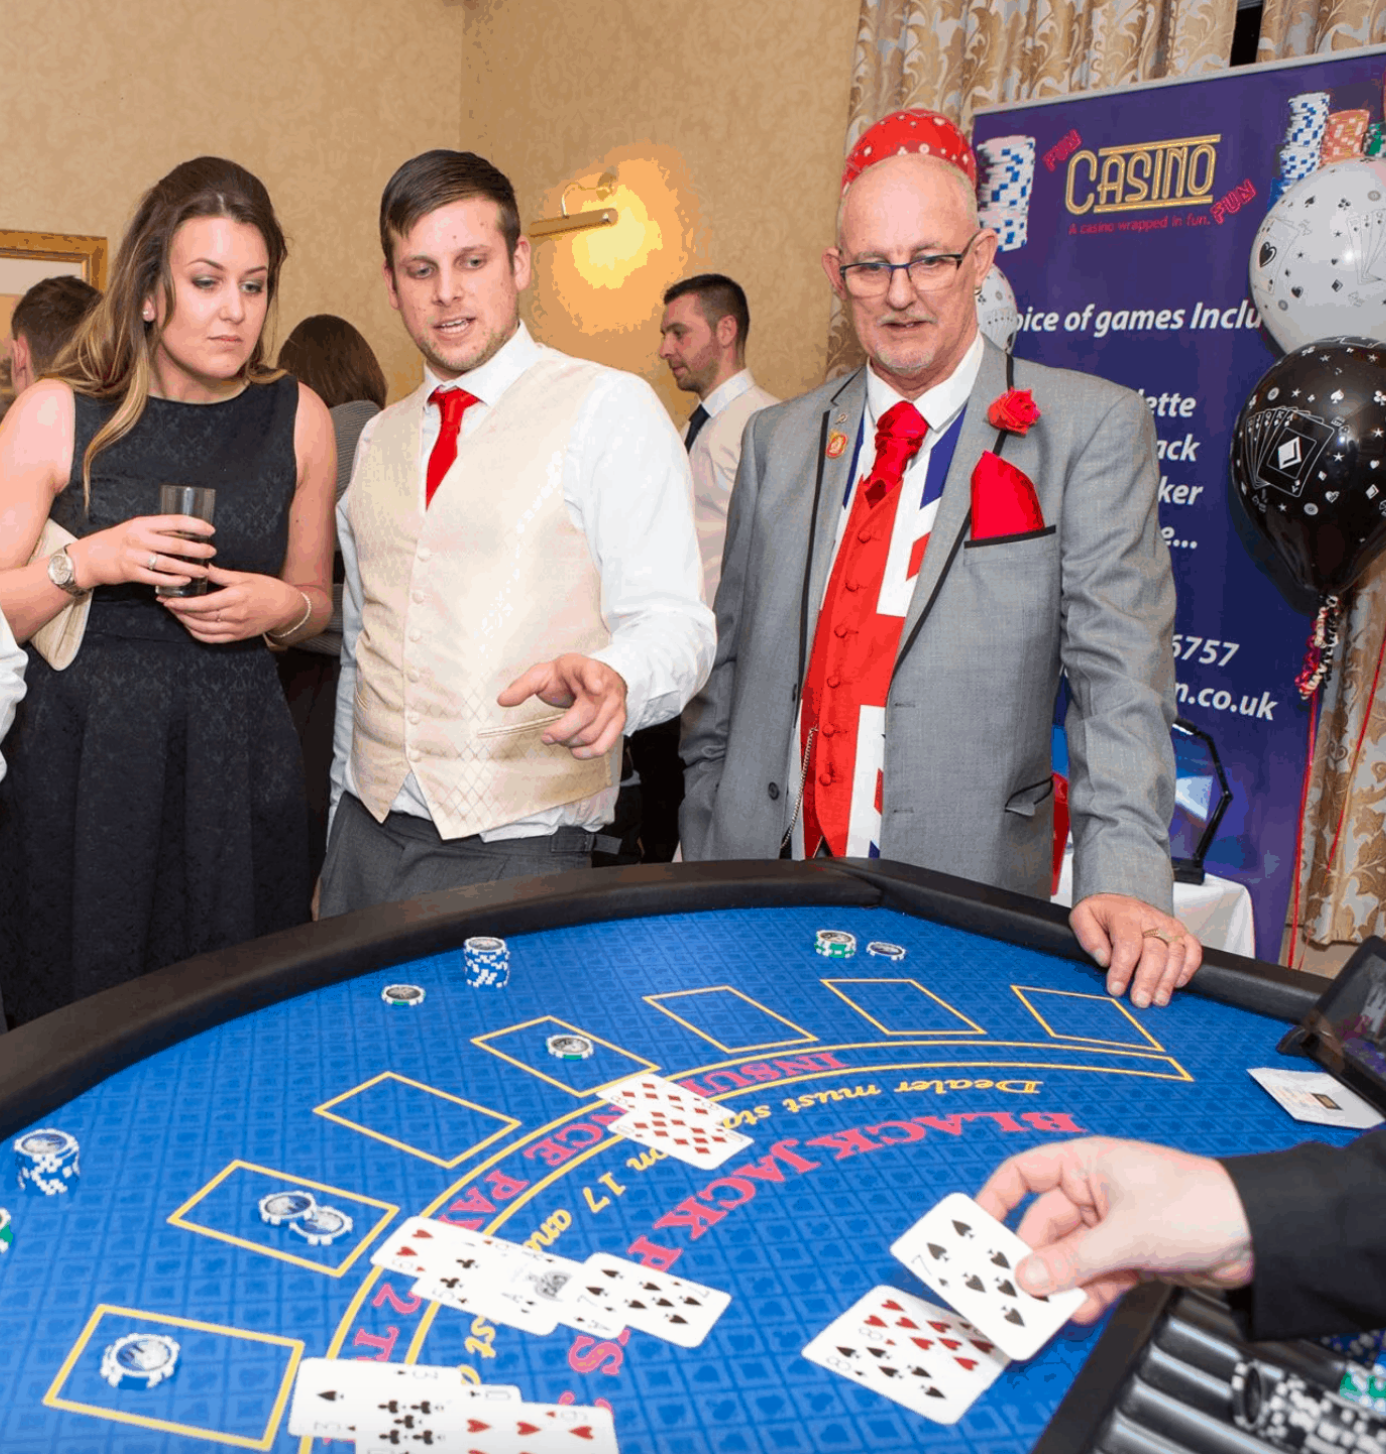 People wearing party clothes stood at a Blackjack table.